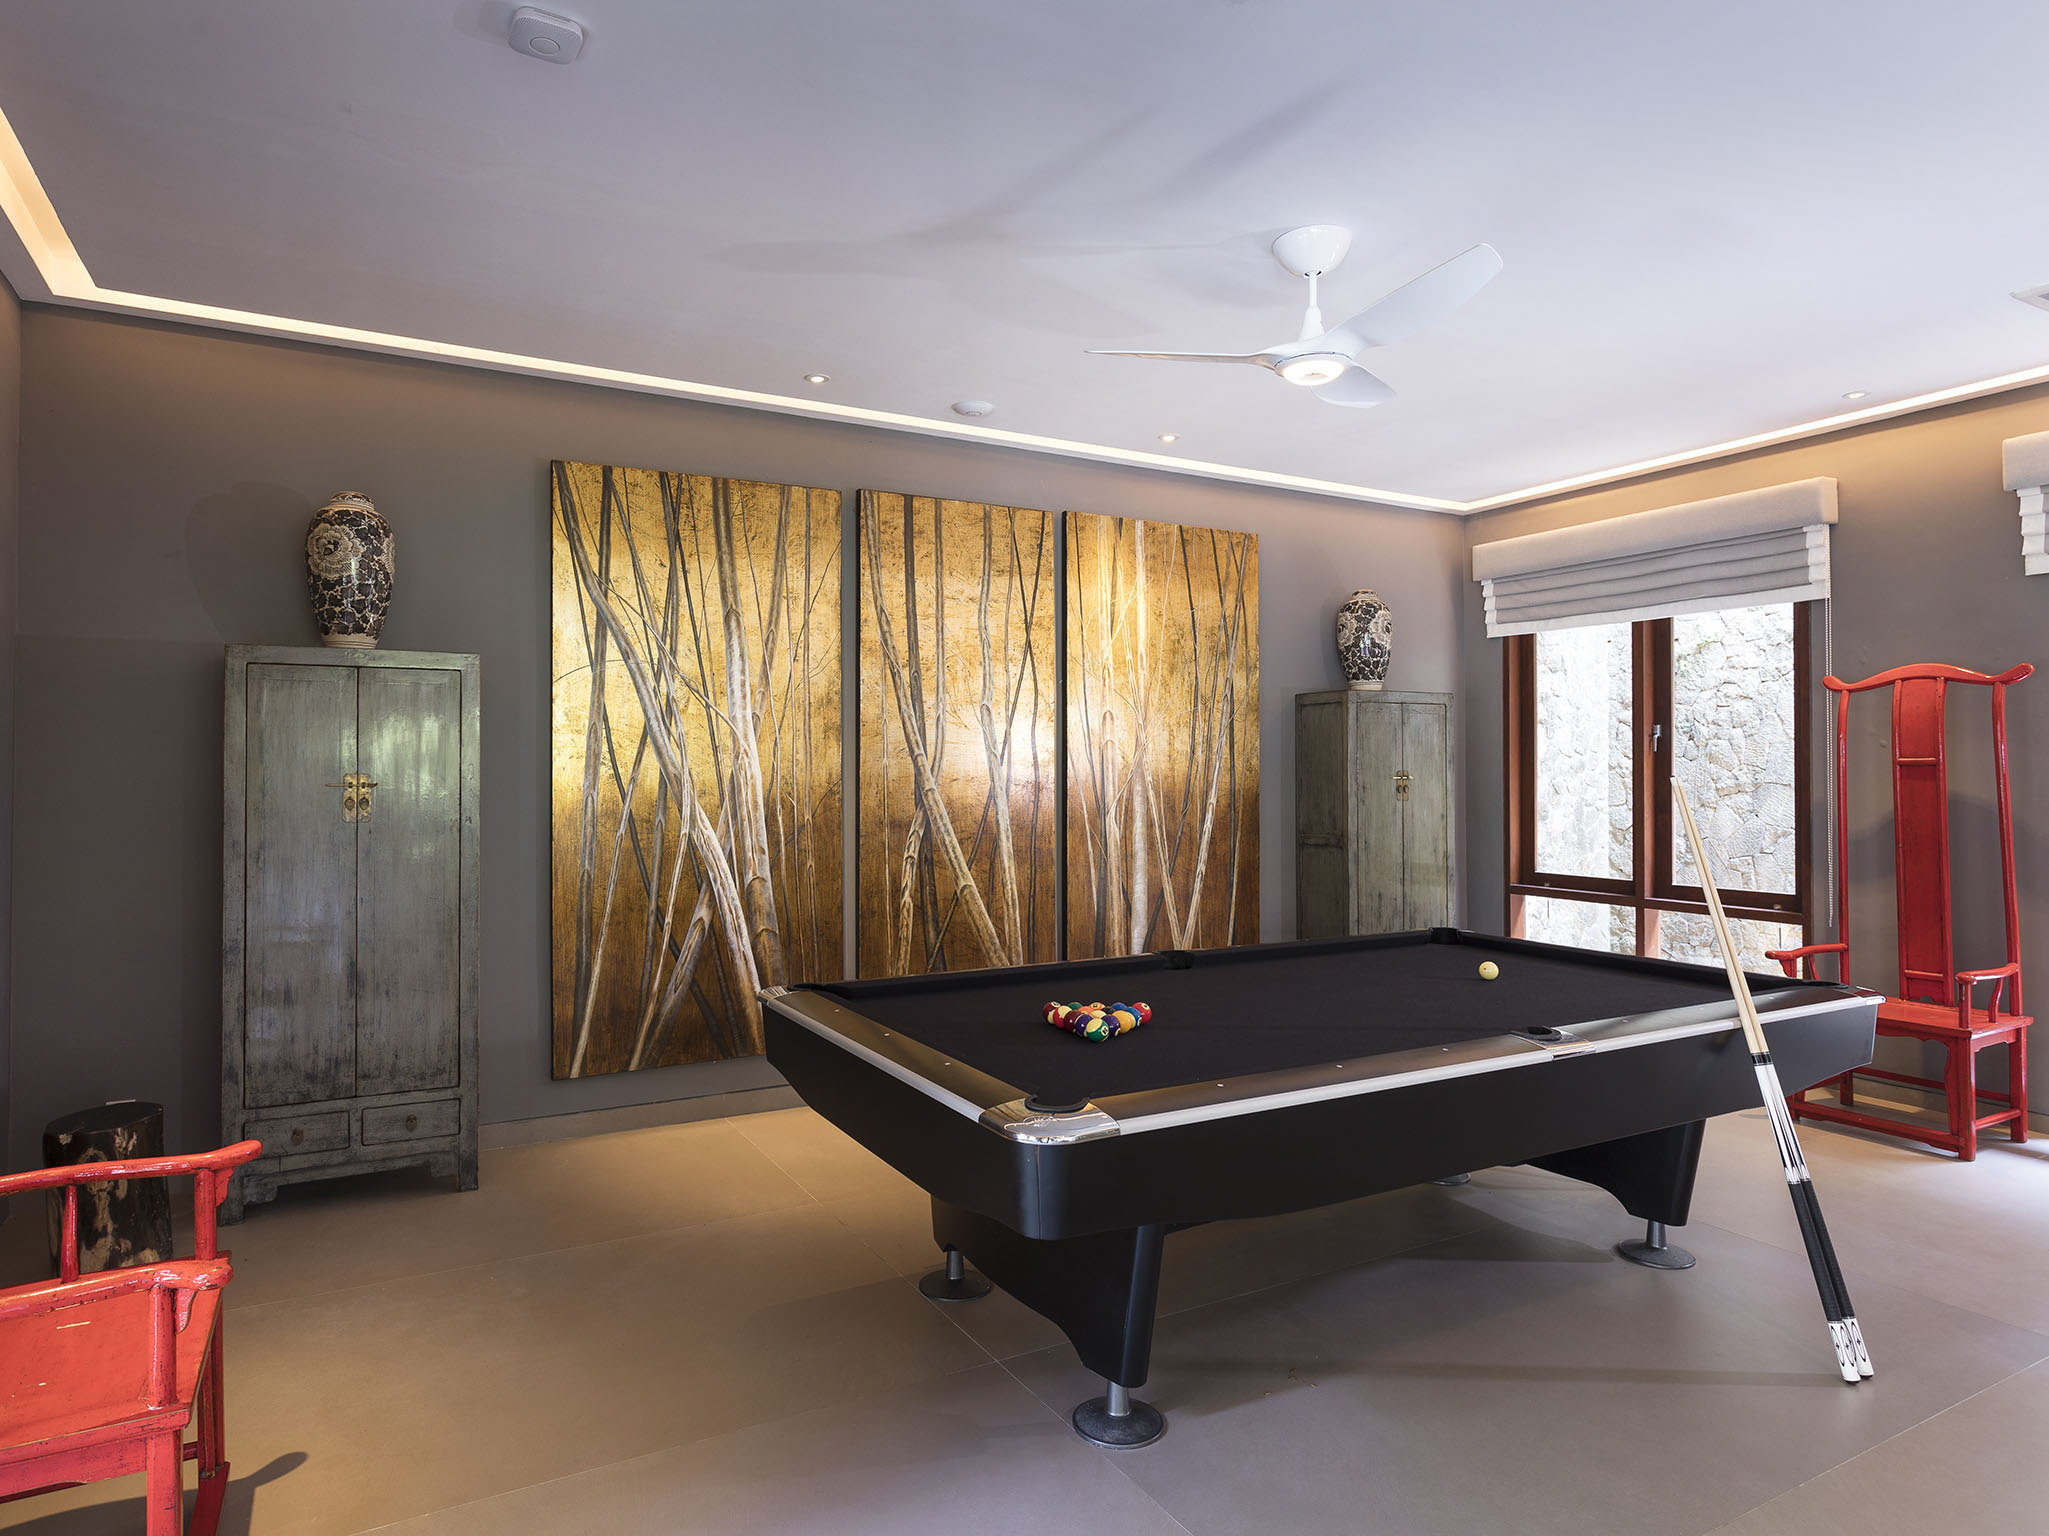 Bali Villas with Pool Tables